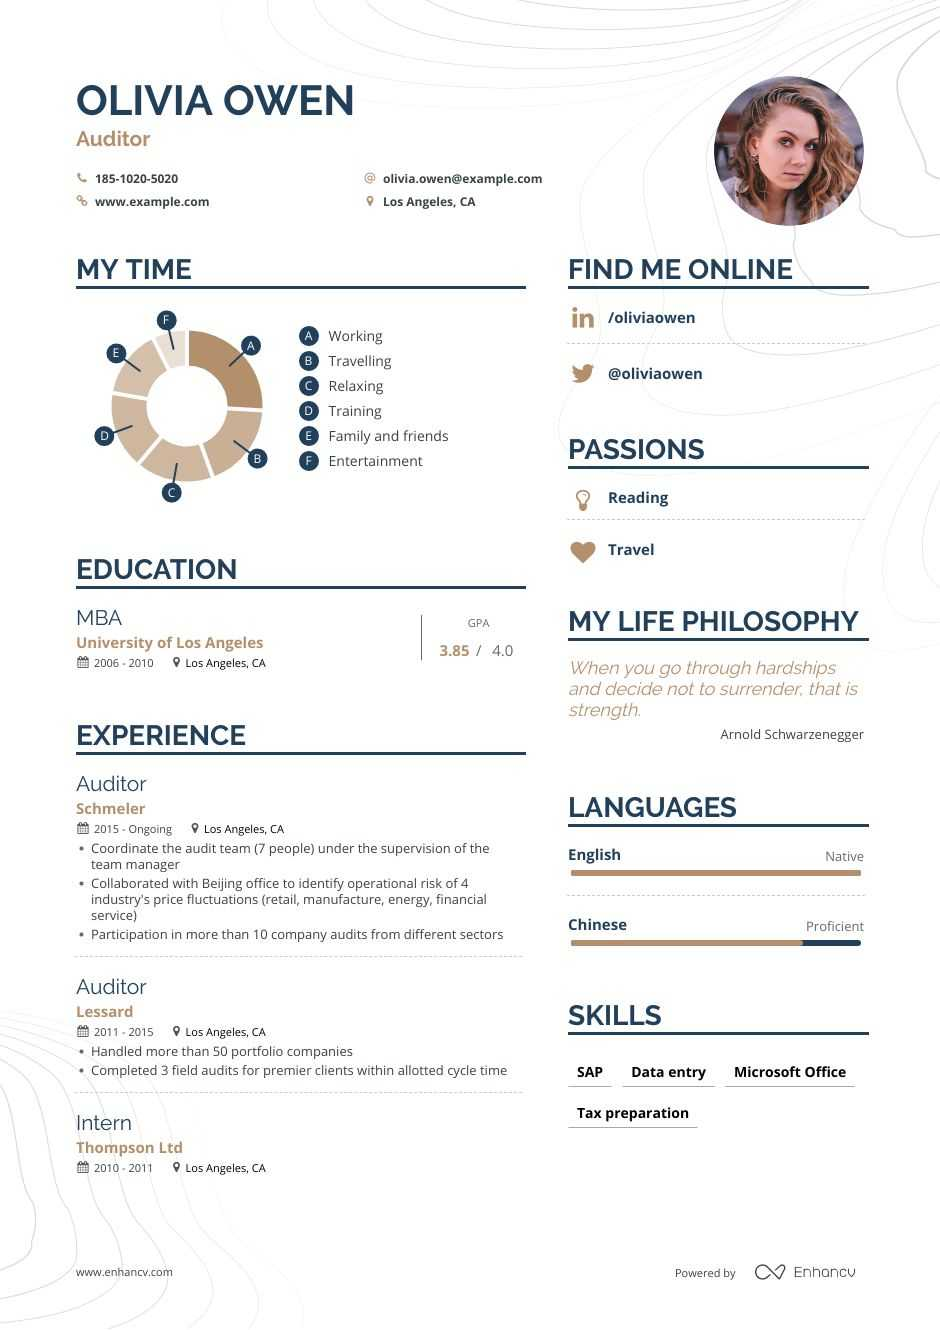 best auditor resume examples with objectives skills templates quantifying for h1b visa Resume Quantifying Resume Examples